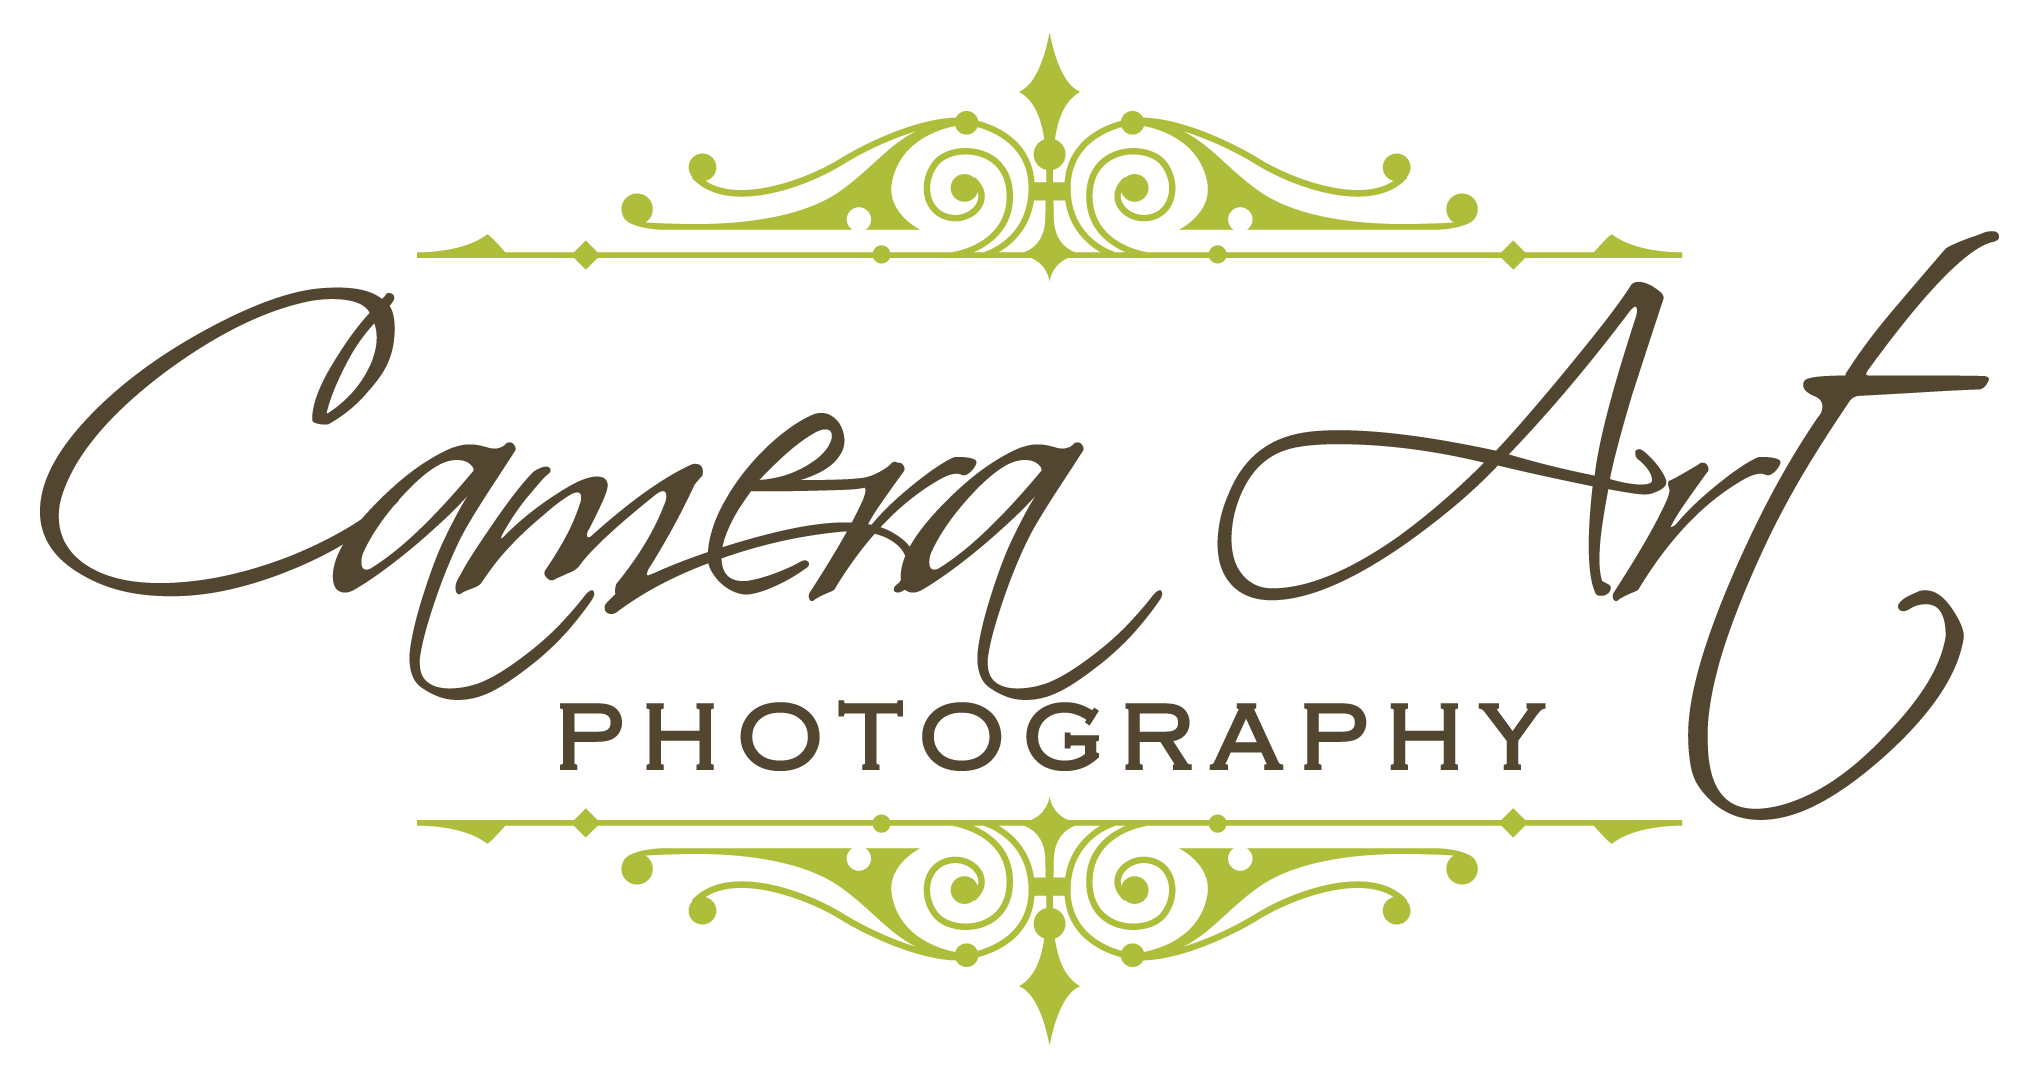 Photography art png. Contact camera photographycamera clip